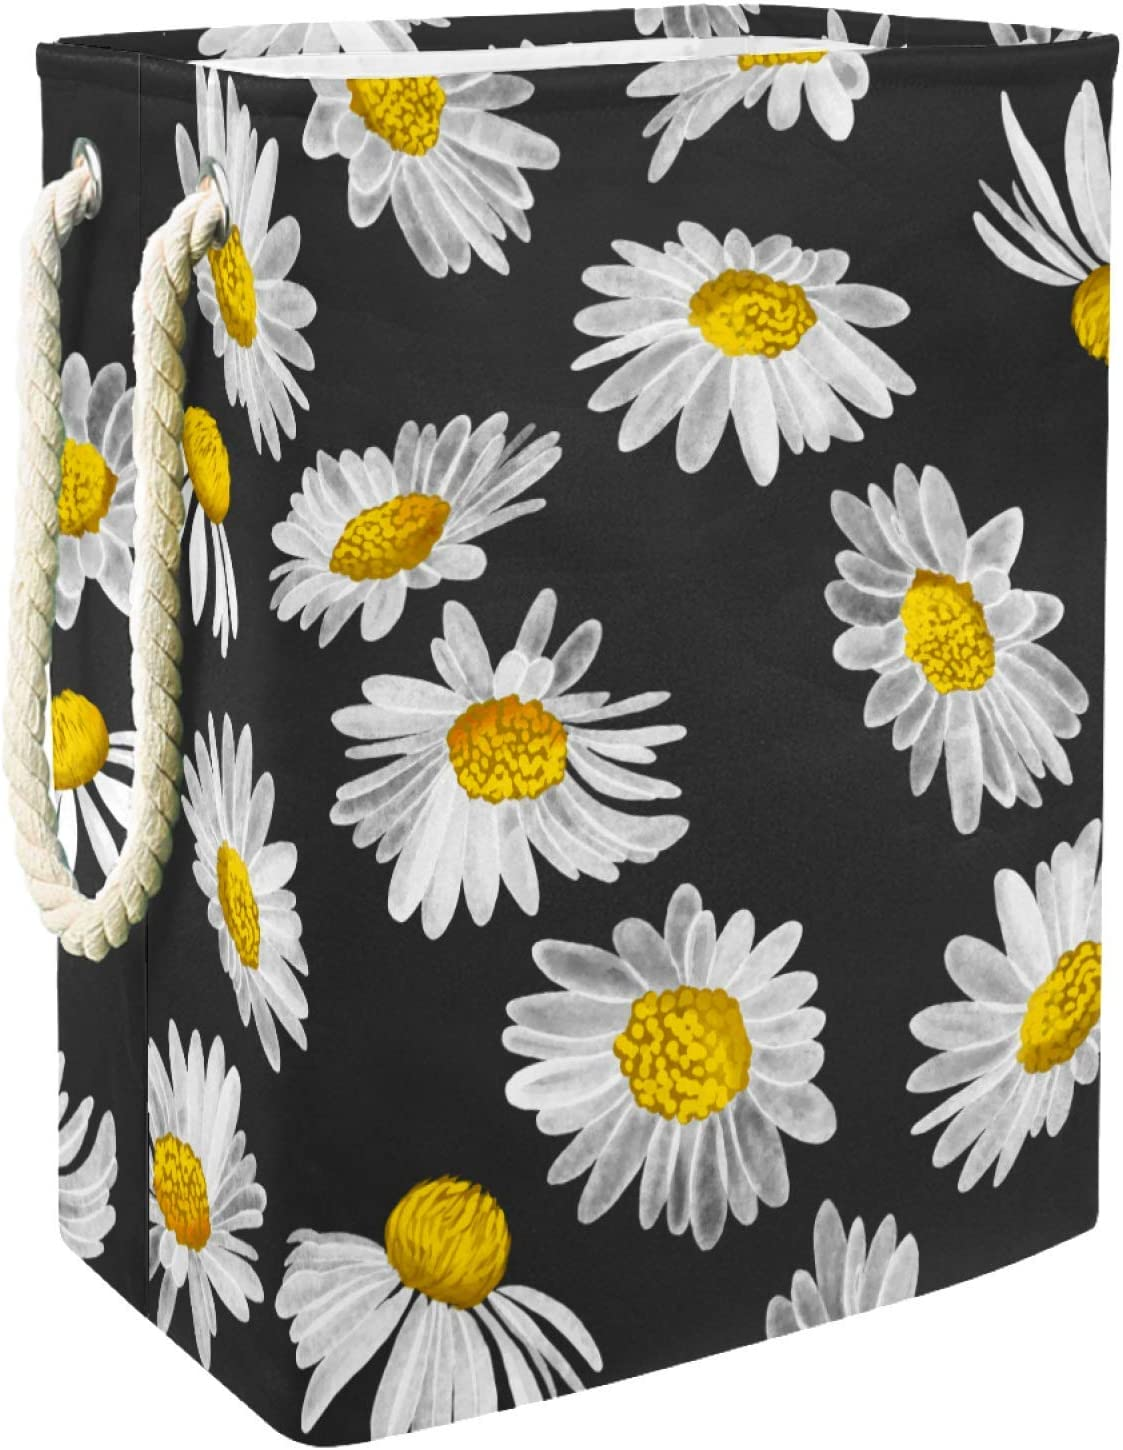 National uniform free shipping Inhomer Laundry Hamper Decorative Collapsible Daisies Mail order cheap Background